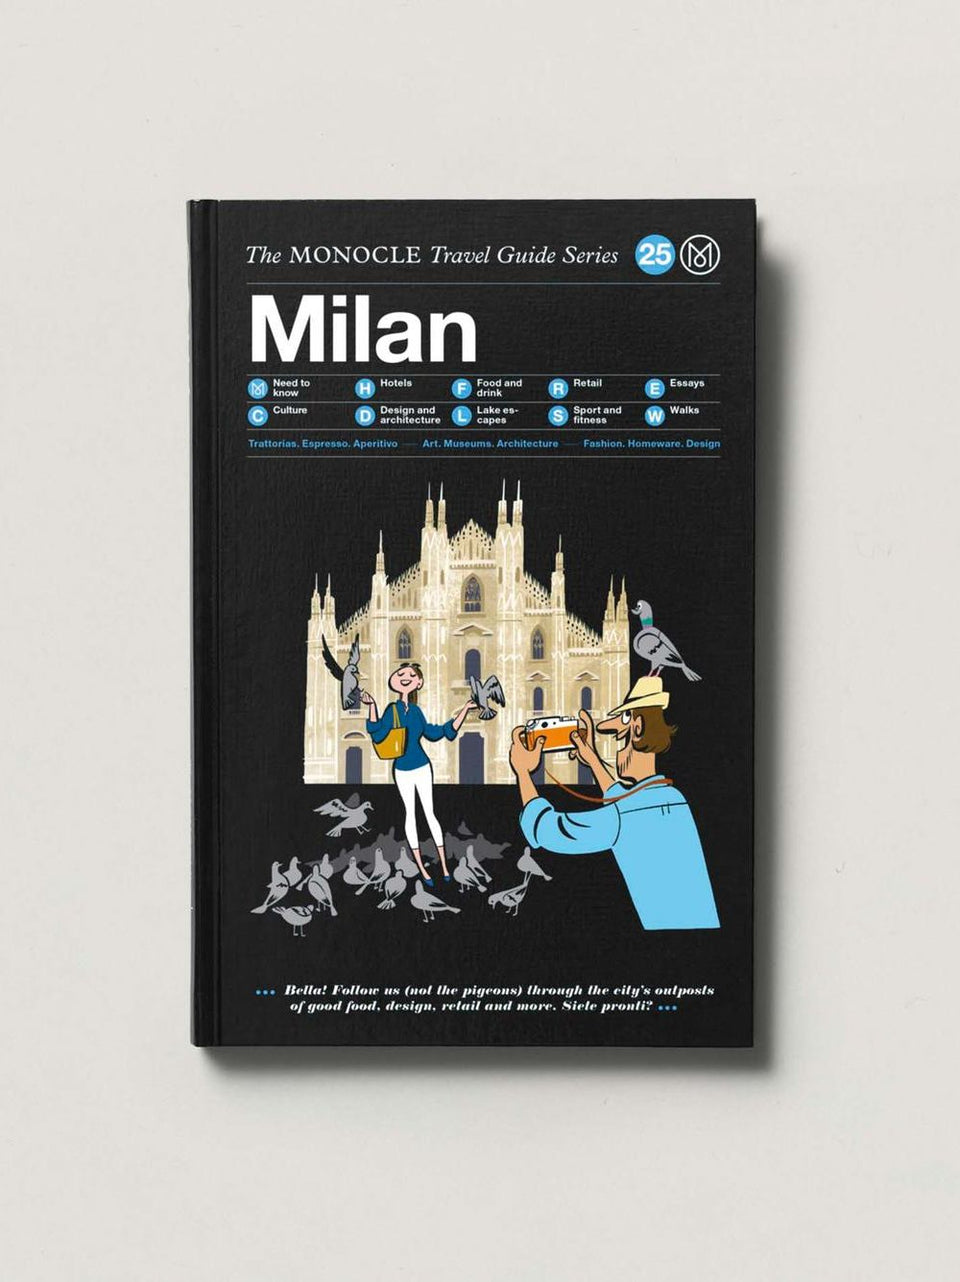 The Monocle Travel Guide, Milan